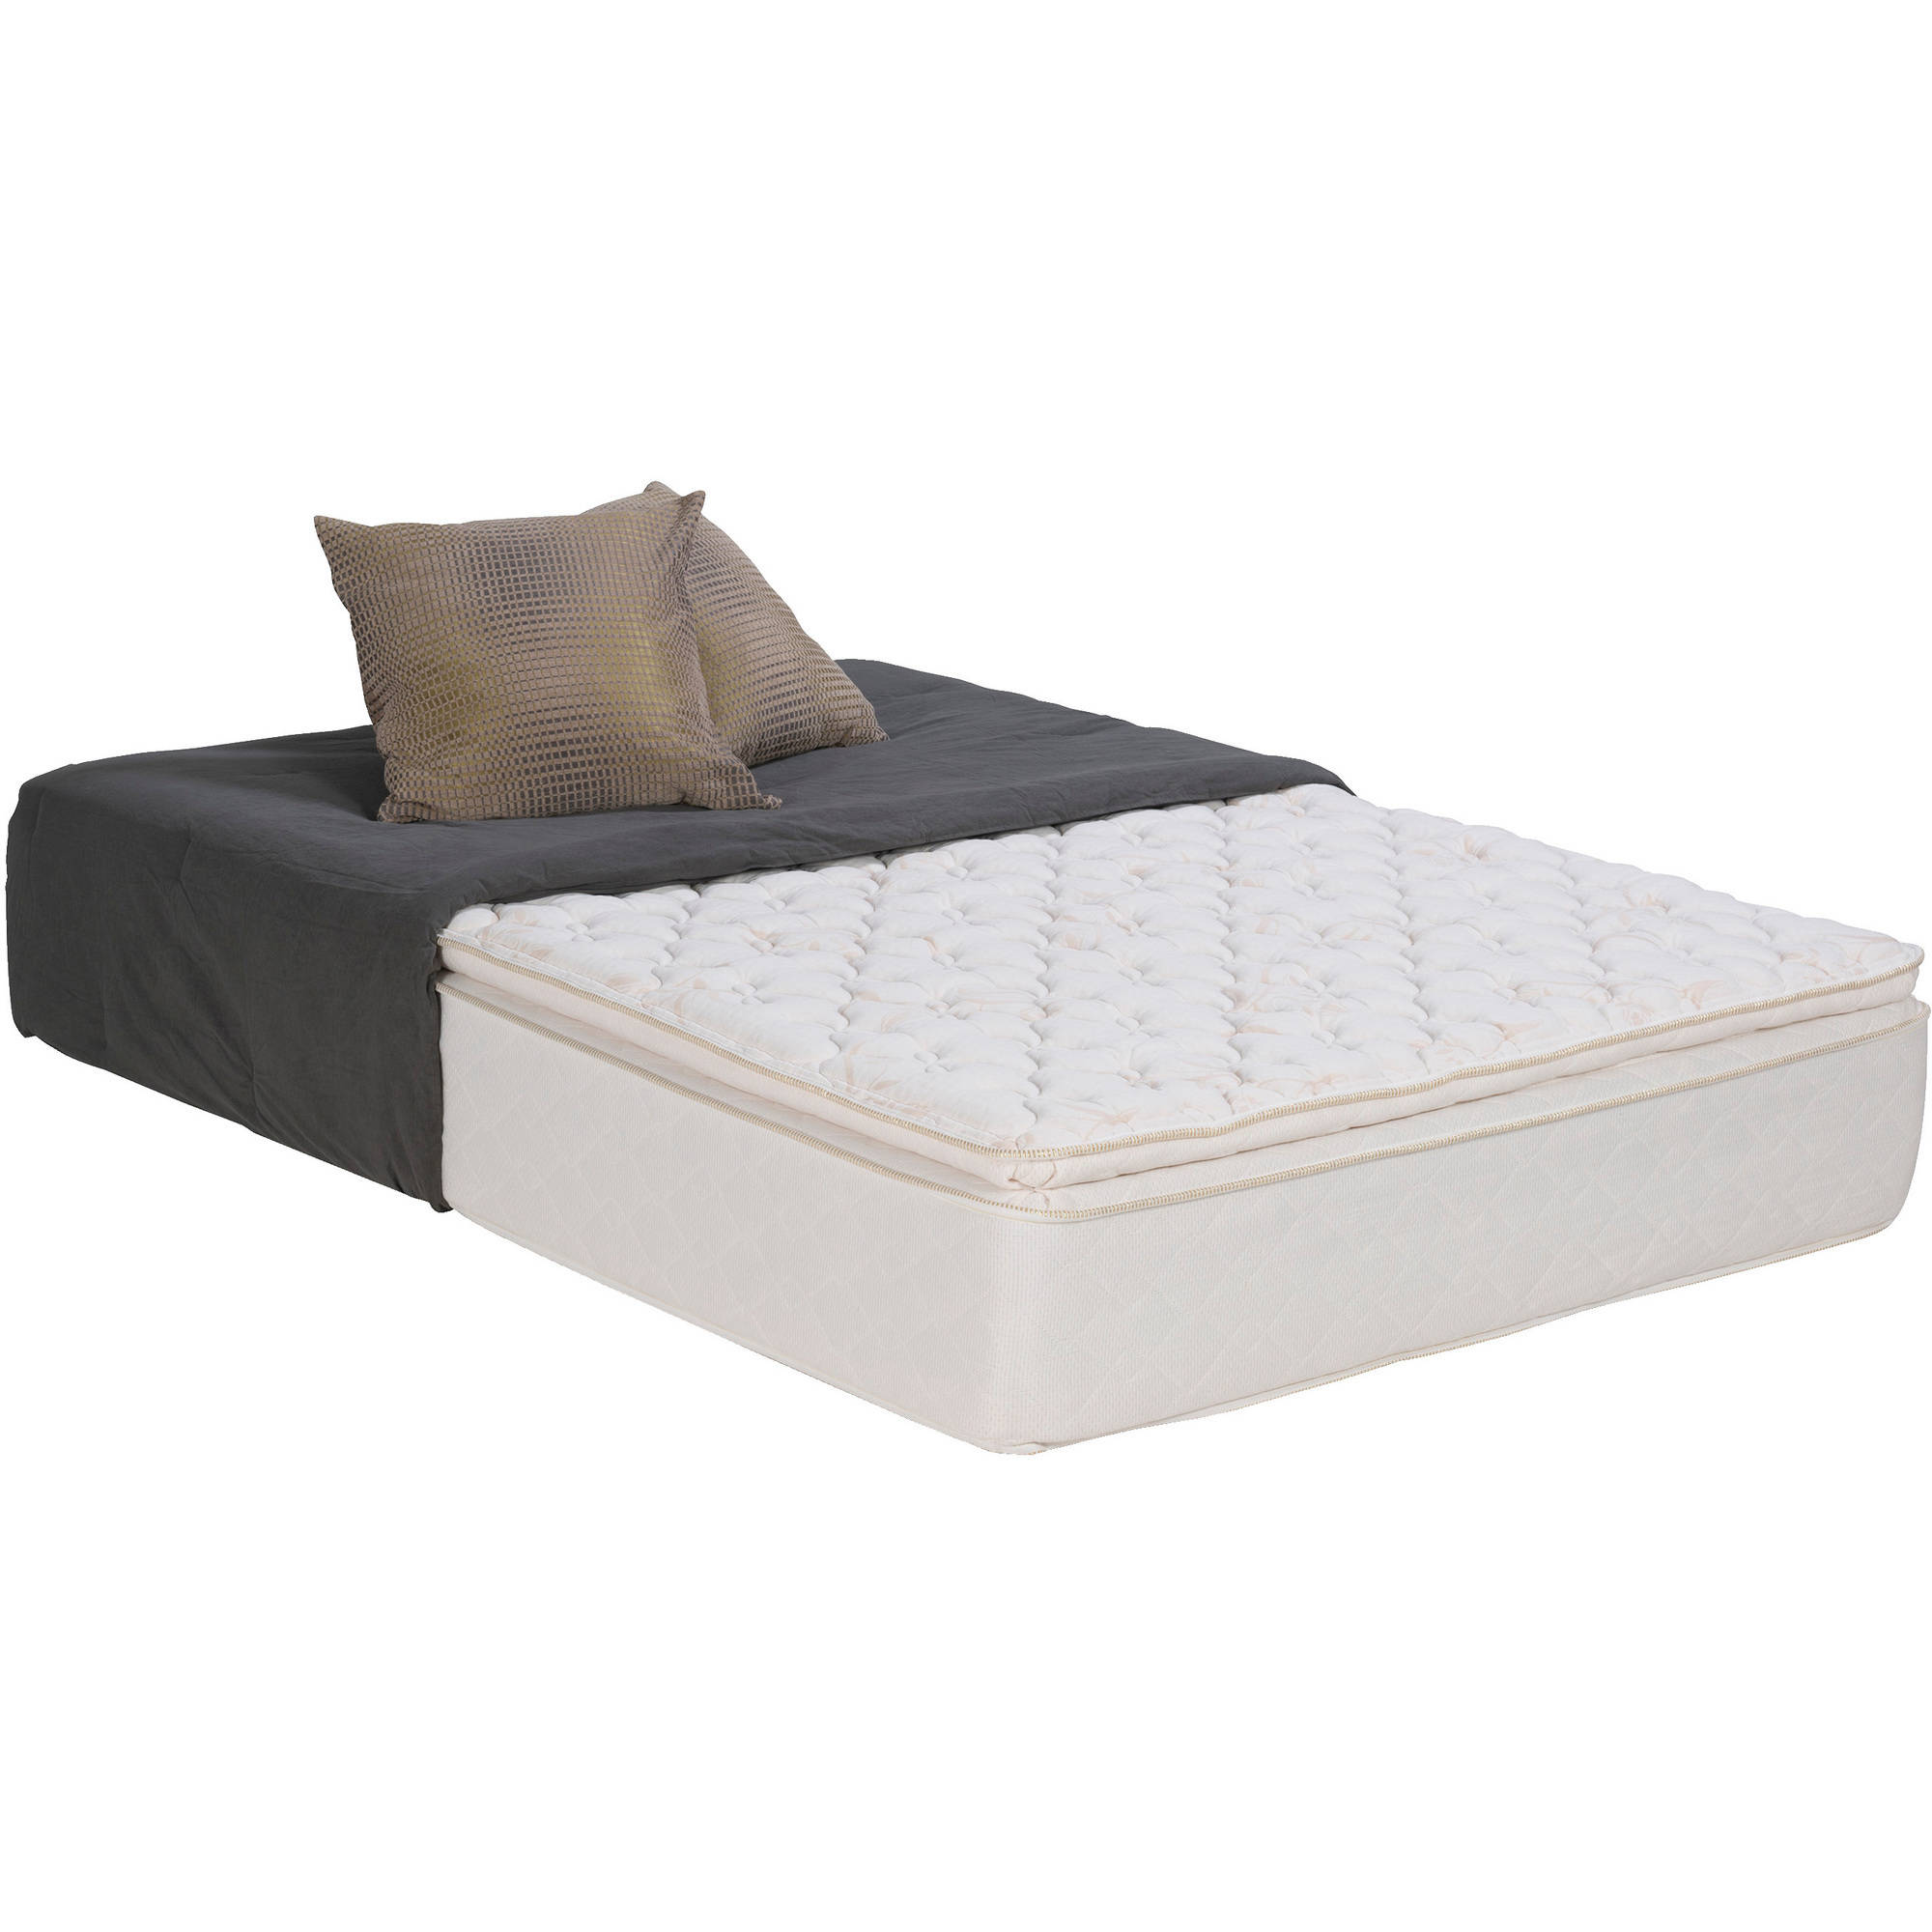 bedroom top macy s topper sale elegant soft pad lovely slumber cover mattress dream pillow of